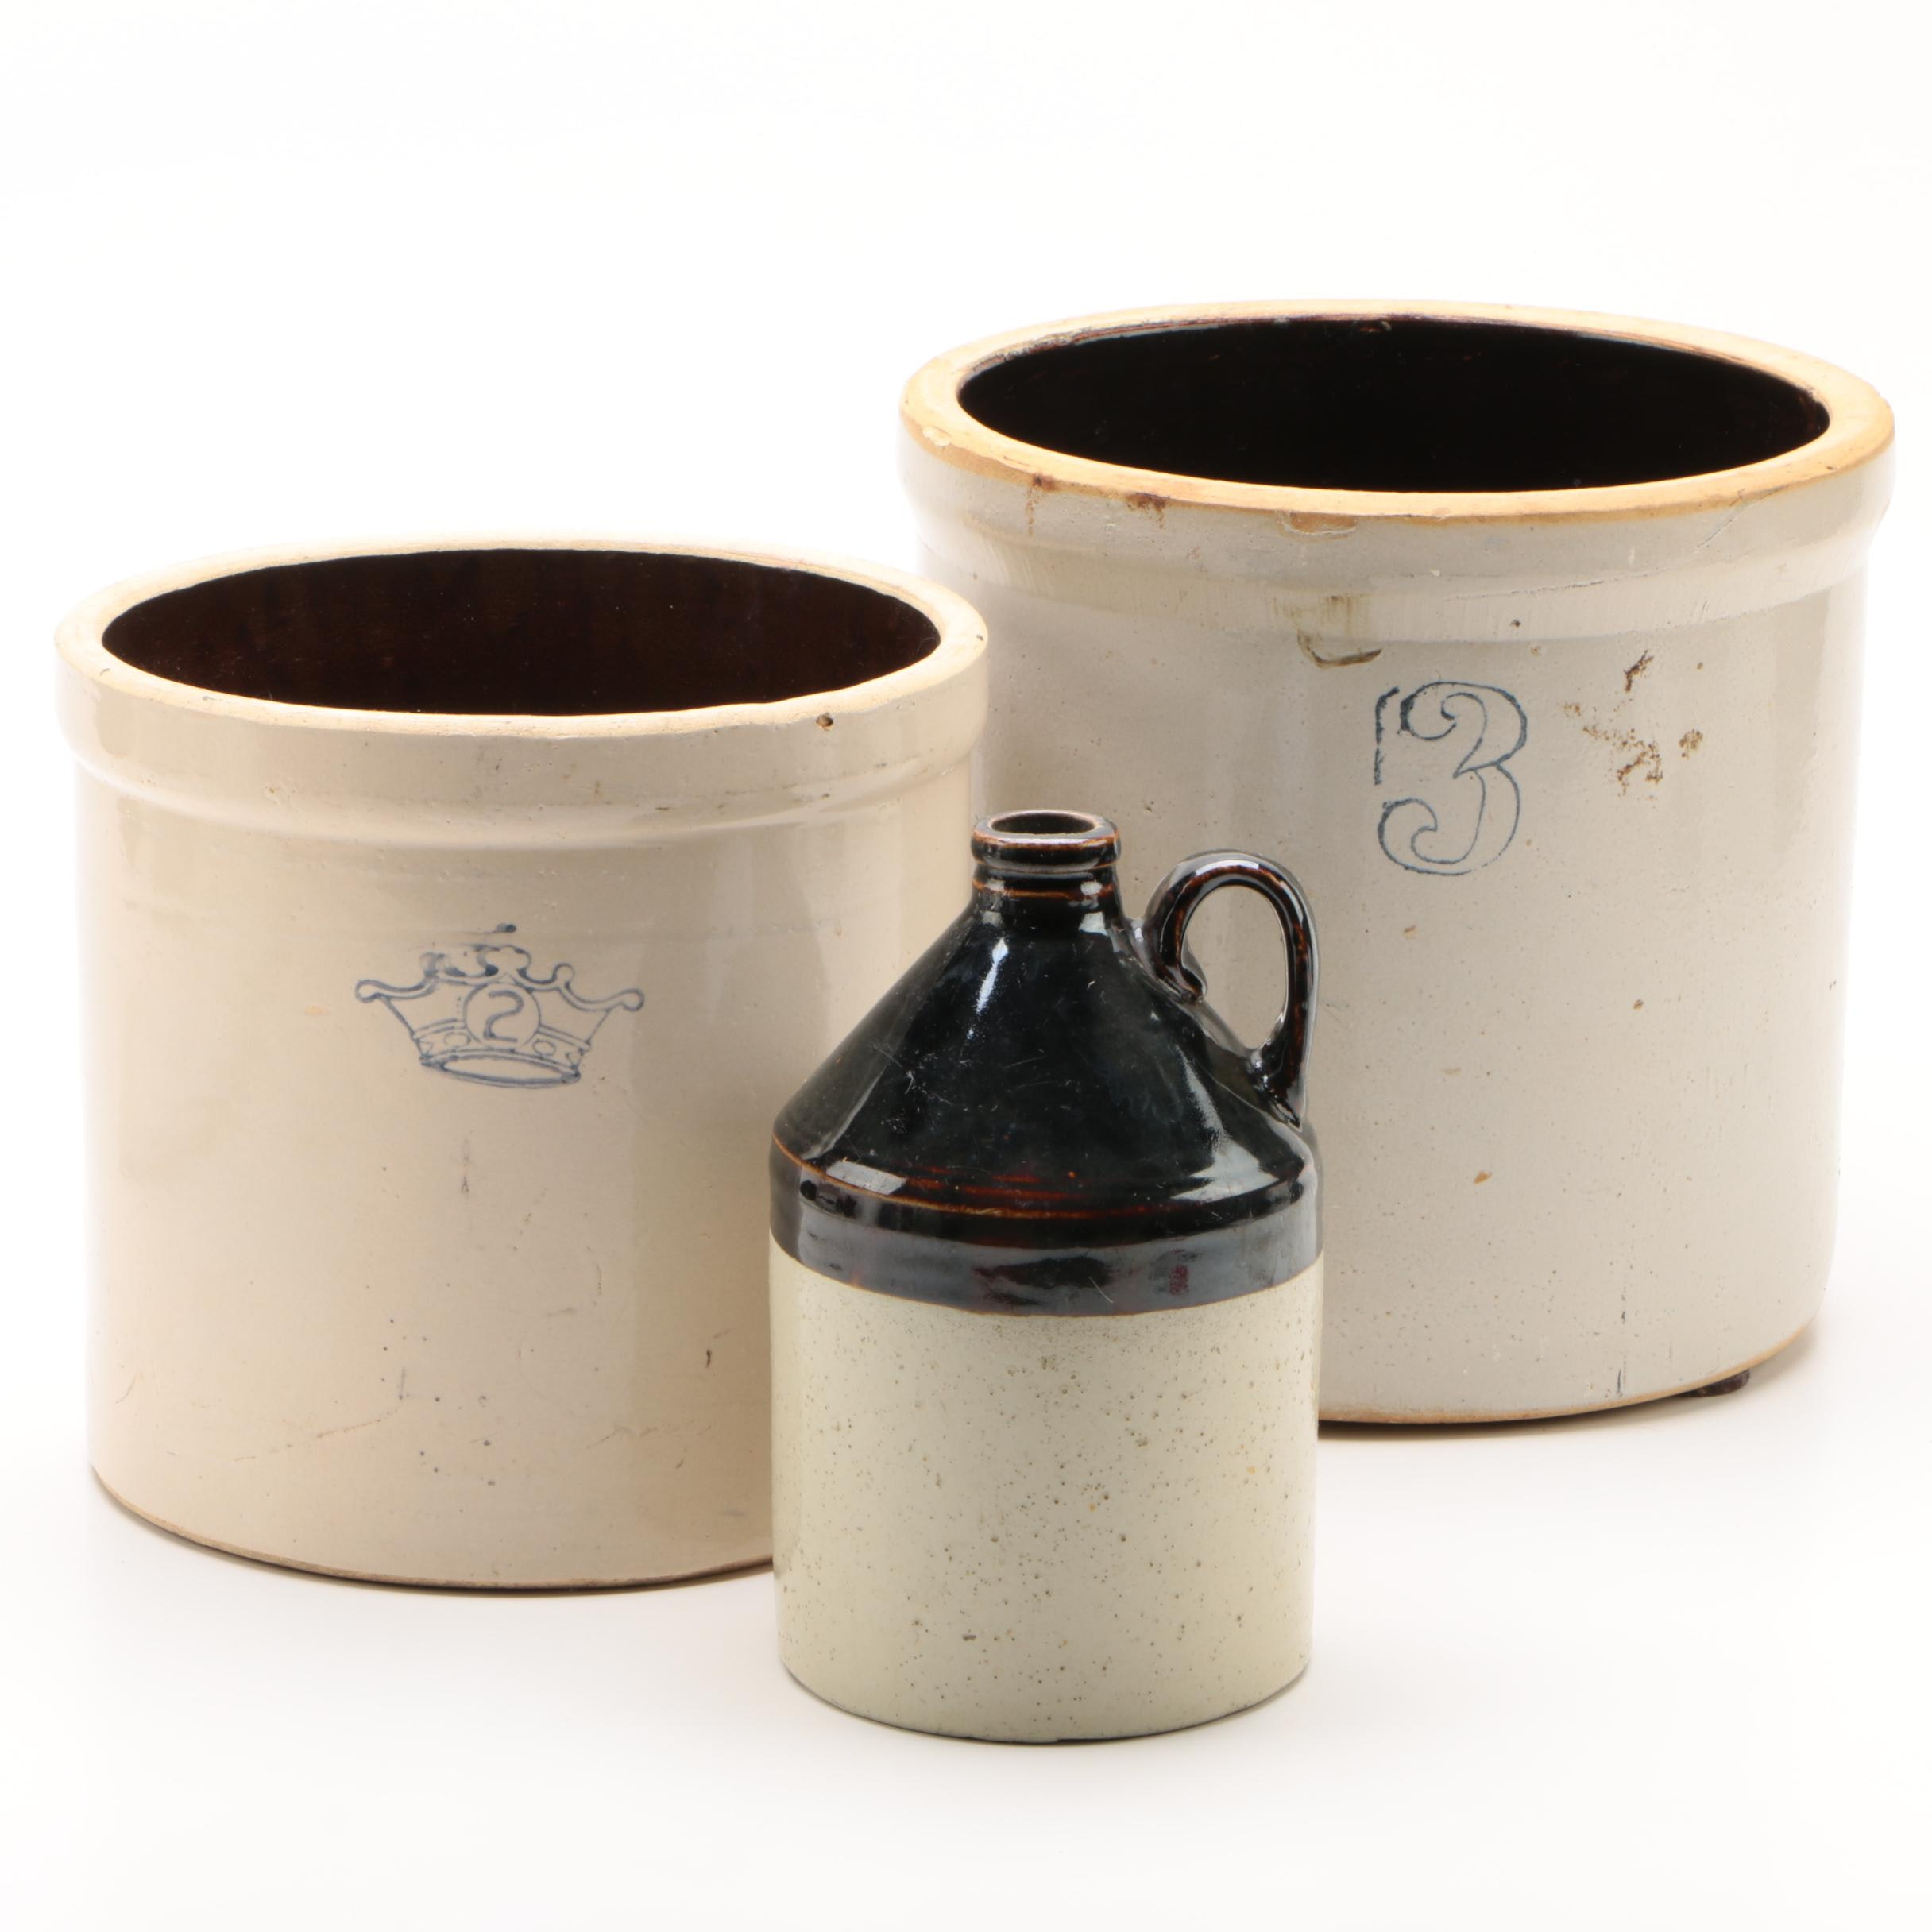 Robinson-Ransbottom Pottery Two-Gallon Stoneware Crock with Crock and Jug